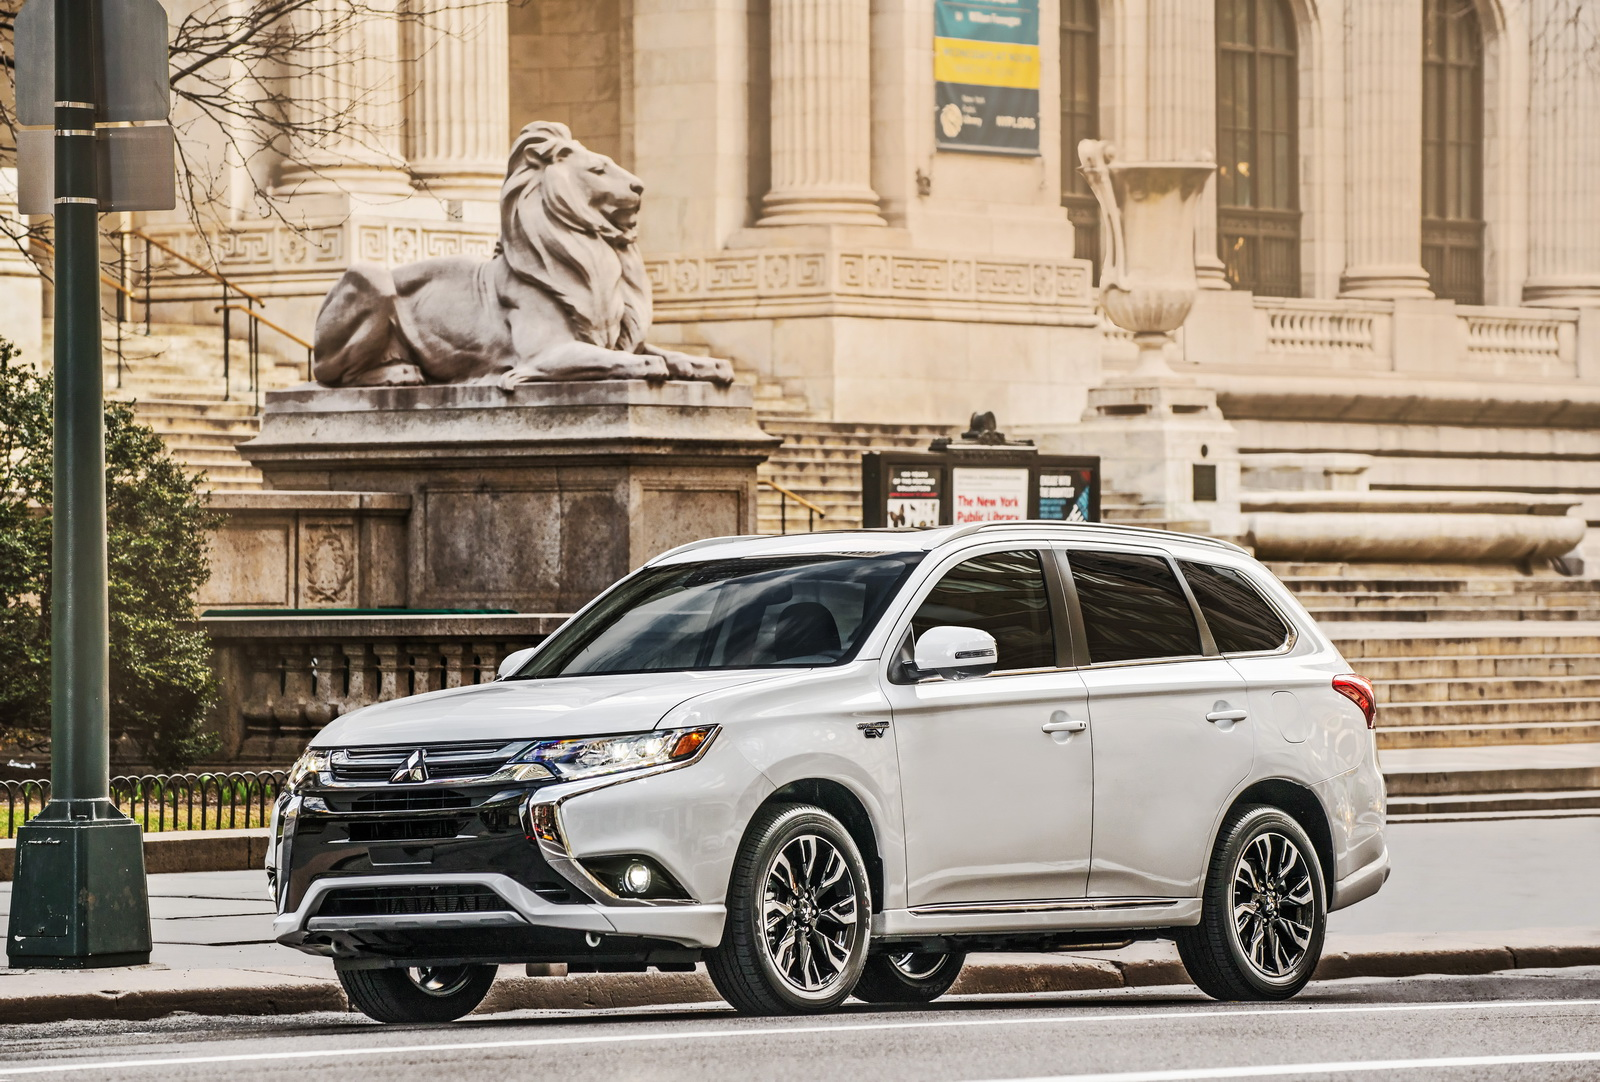 2018 Mitsubishi Outlander PHEV Lands In The US From